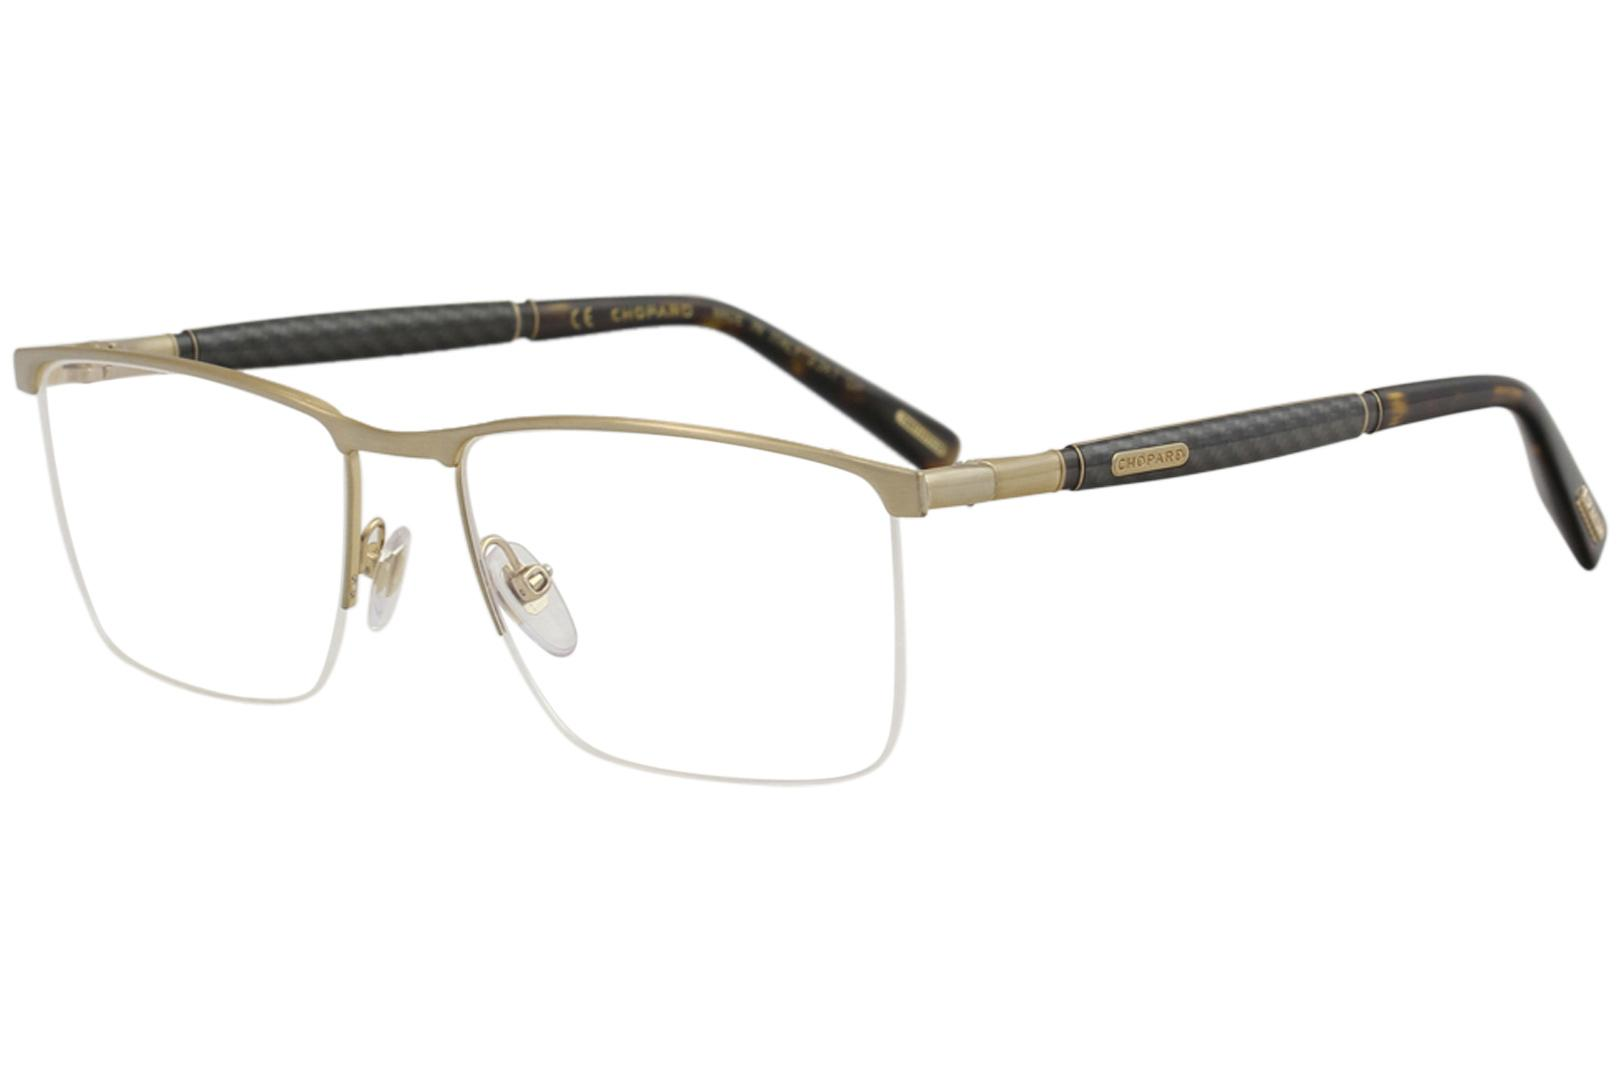 f397882855b Chopard Eyeglasses VCHC38 VCH   C38 0H22 23K Gold Half Rim Optical Frame  57mm